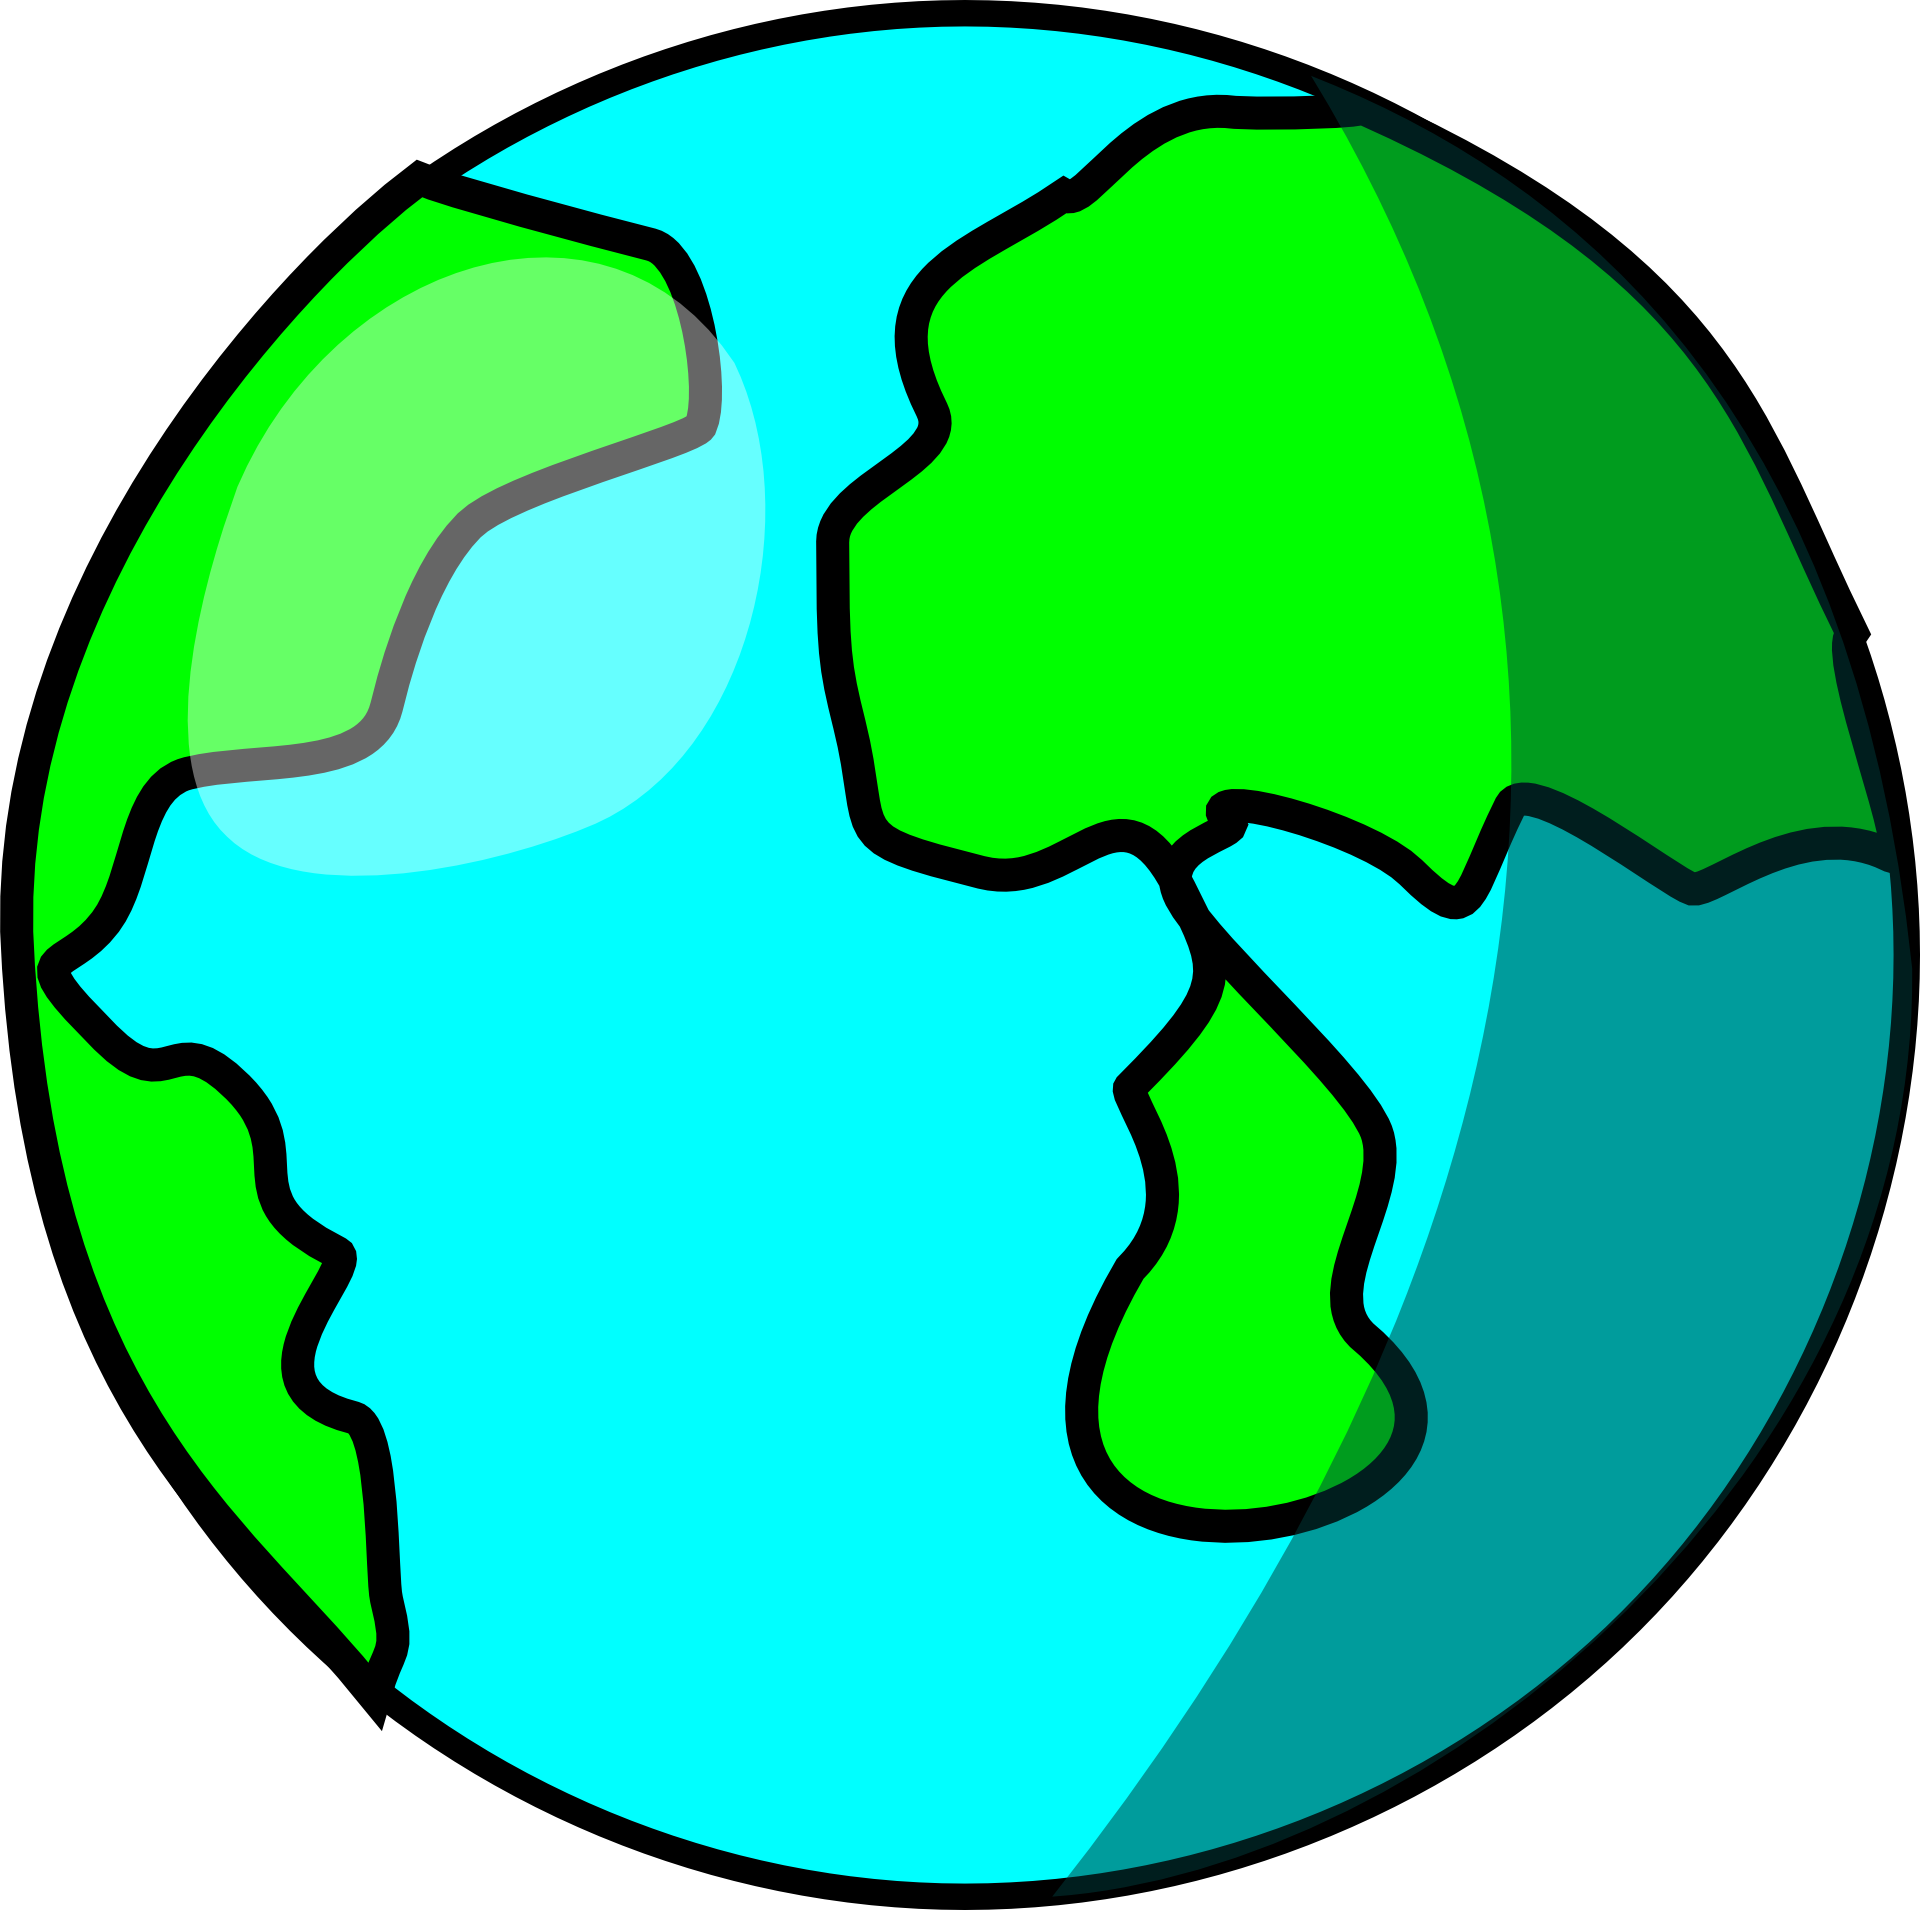 Clipart of the earth free image.